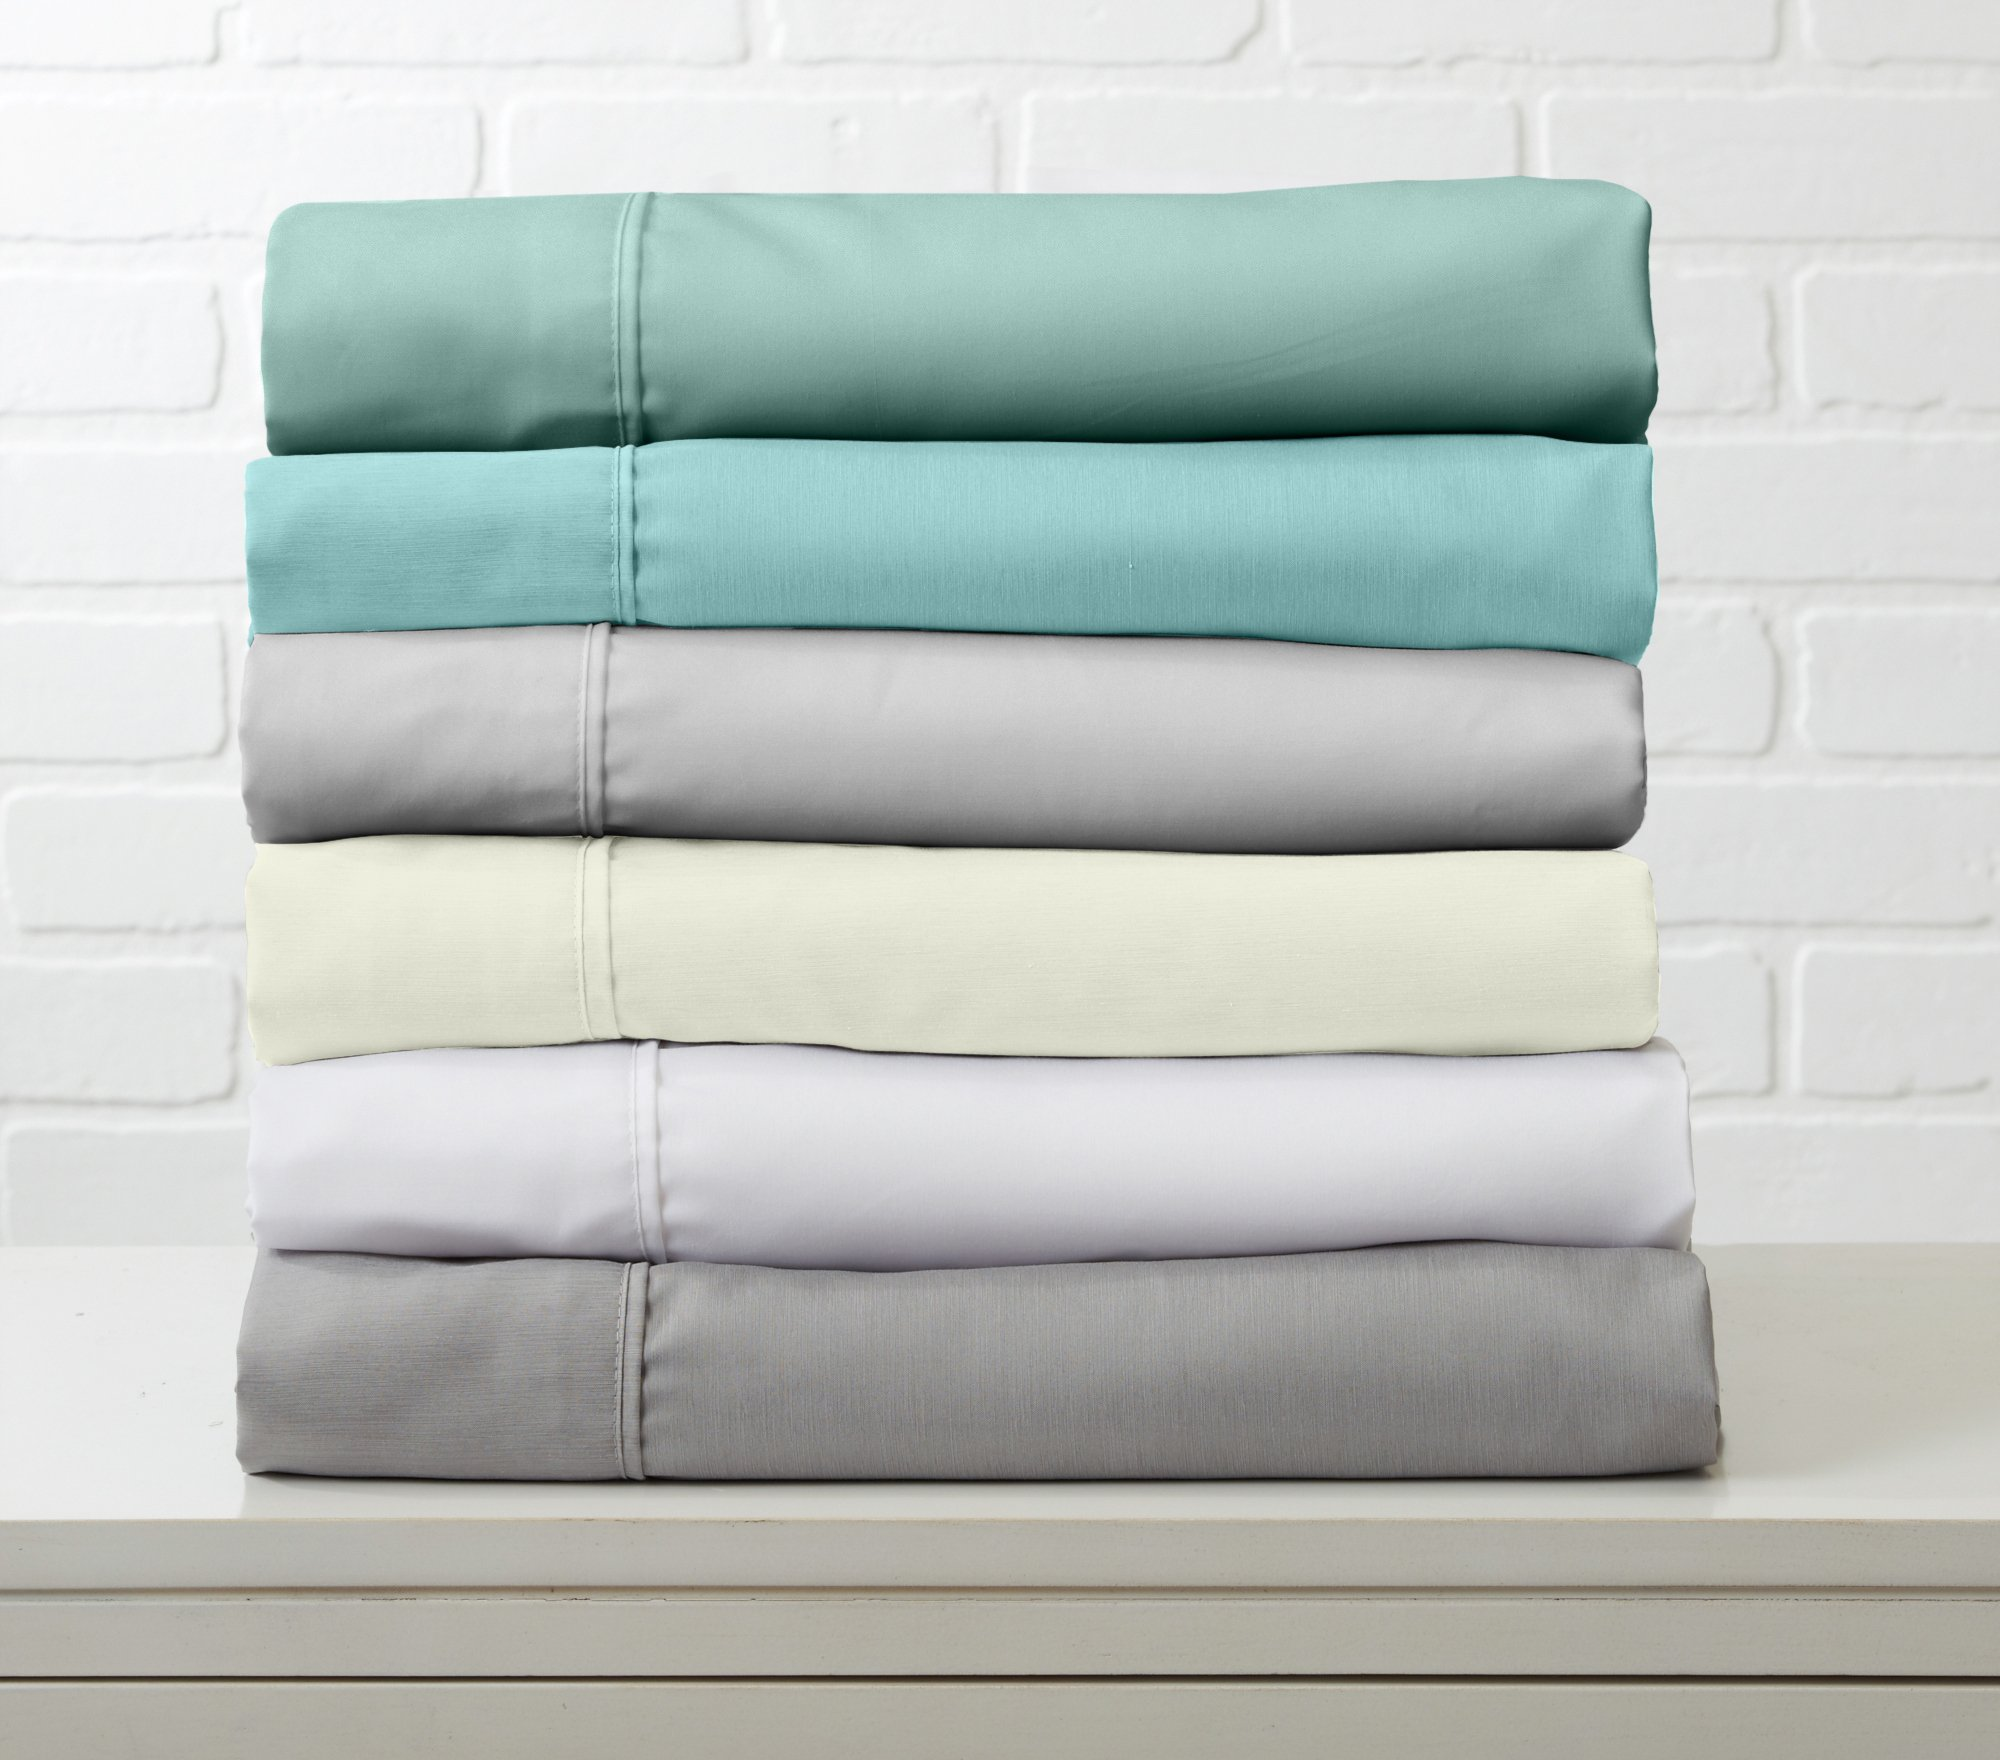 Great Bay Home Luxury Ultra Soft Bamboo Sheet Set. Spa-Quality, Comfortable, All-Season Bed Sheets. By Brand. (King, Paloma Grey) by Great Bay Home (Image #3)